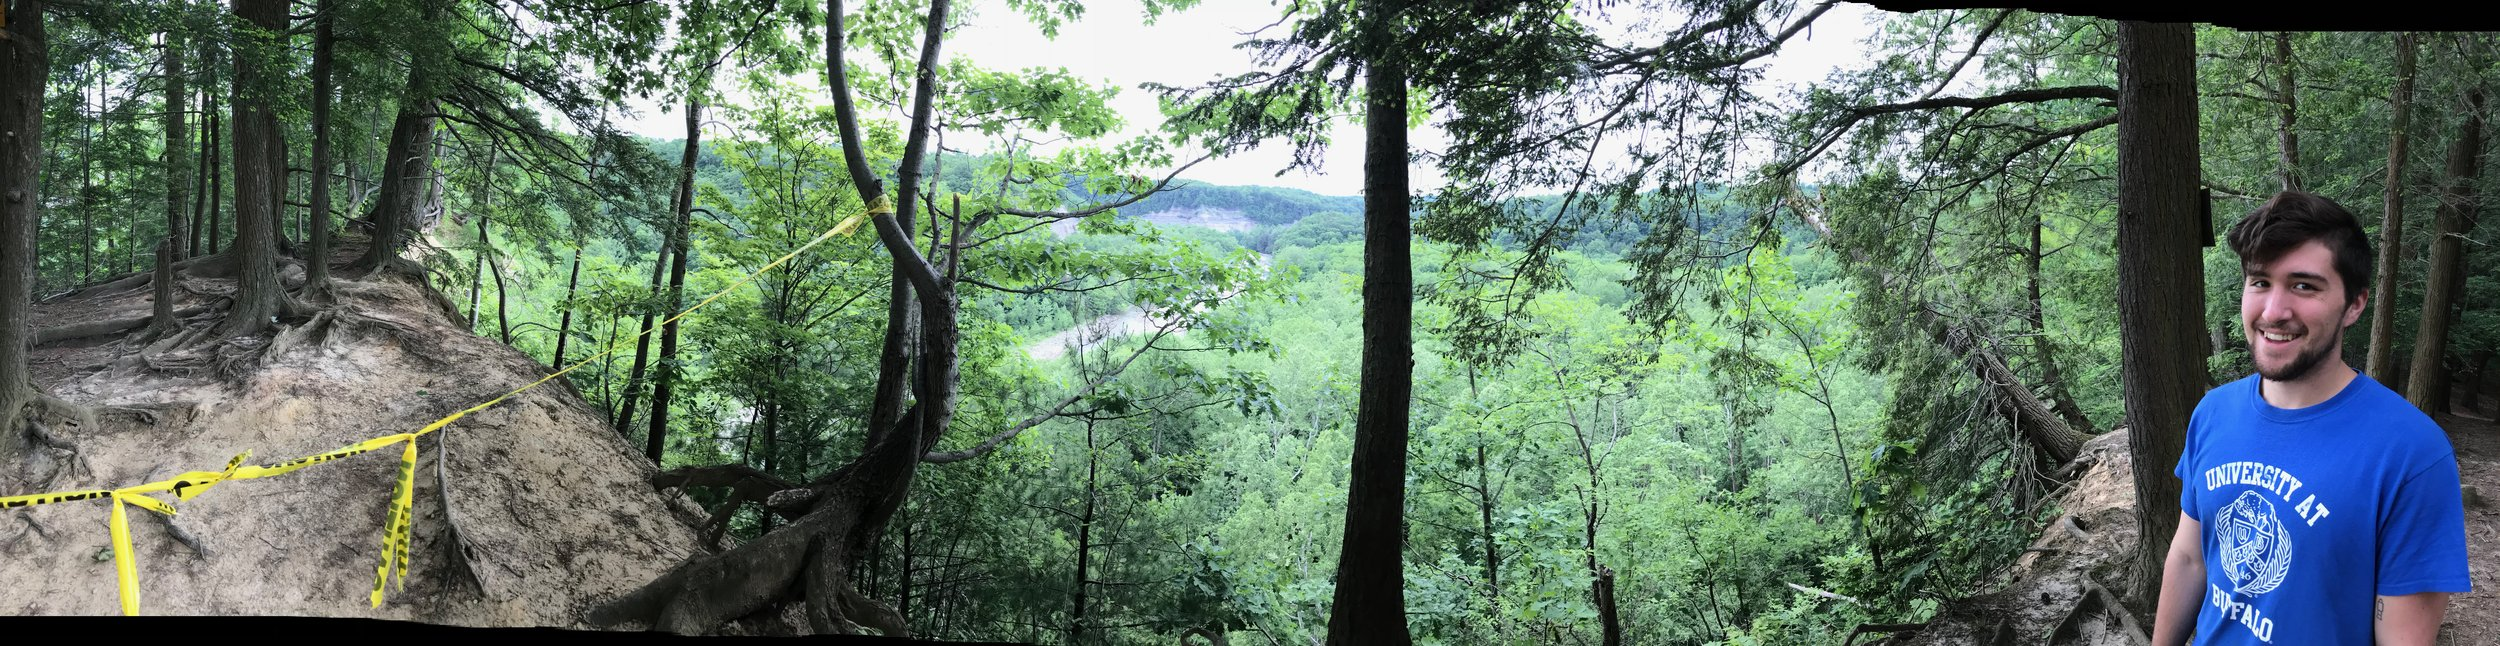 Panorama of the top of the trail overlooking the gorge. It's taped off due to being a death trap.